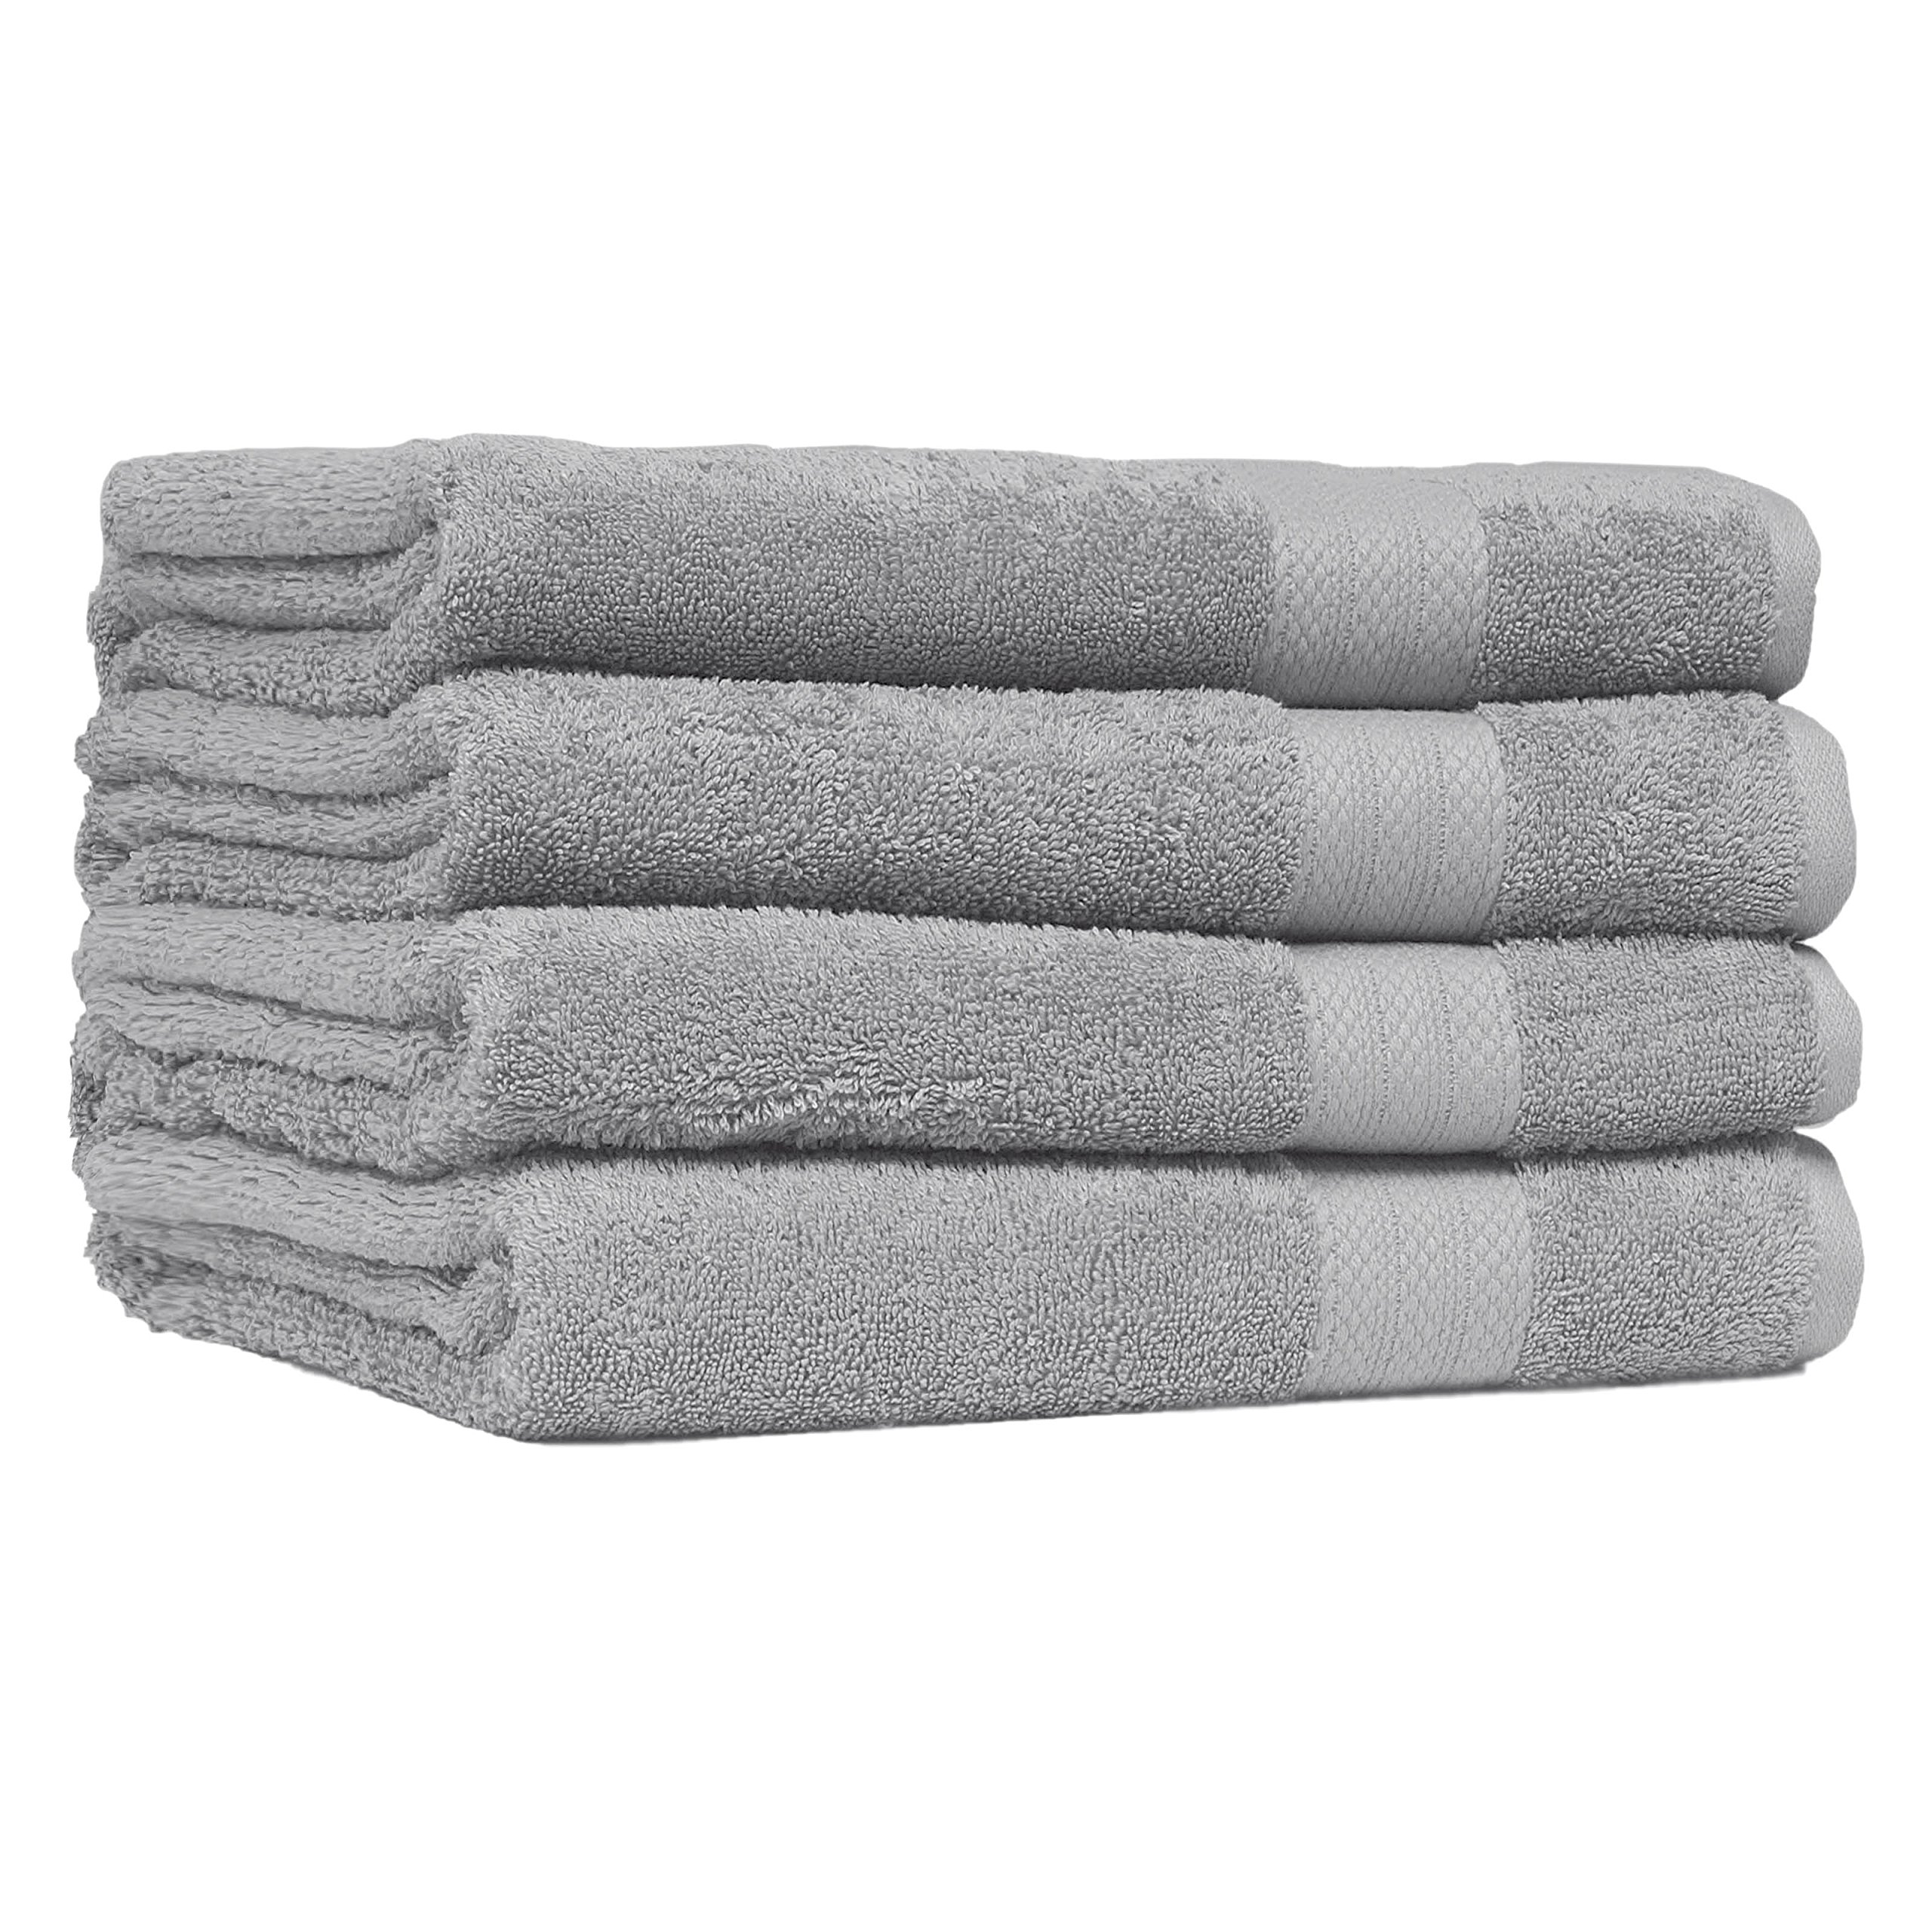 Economic Collection 4 Pack Ultra Soft Oversized Extra Large Bath Sheet 35x66-100% Pure Ringspun Cotton - Luxurious trim - Absorbent Ideal for everyday use - Easy care machine wash (Platinum)